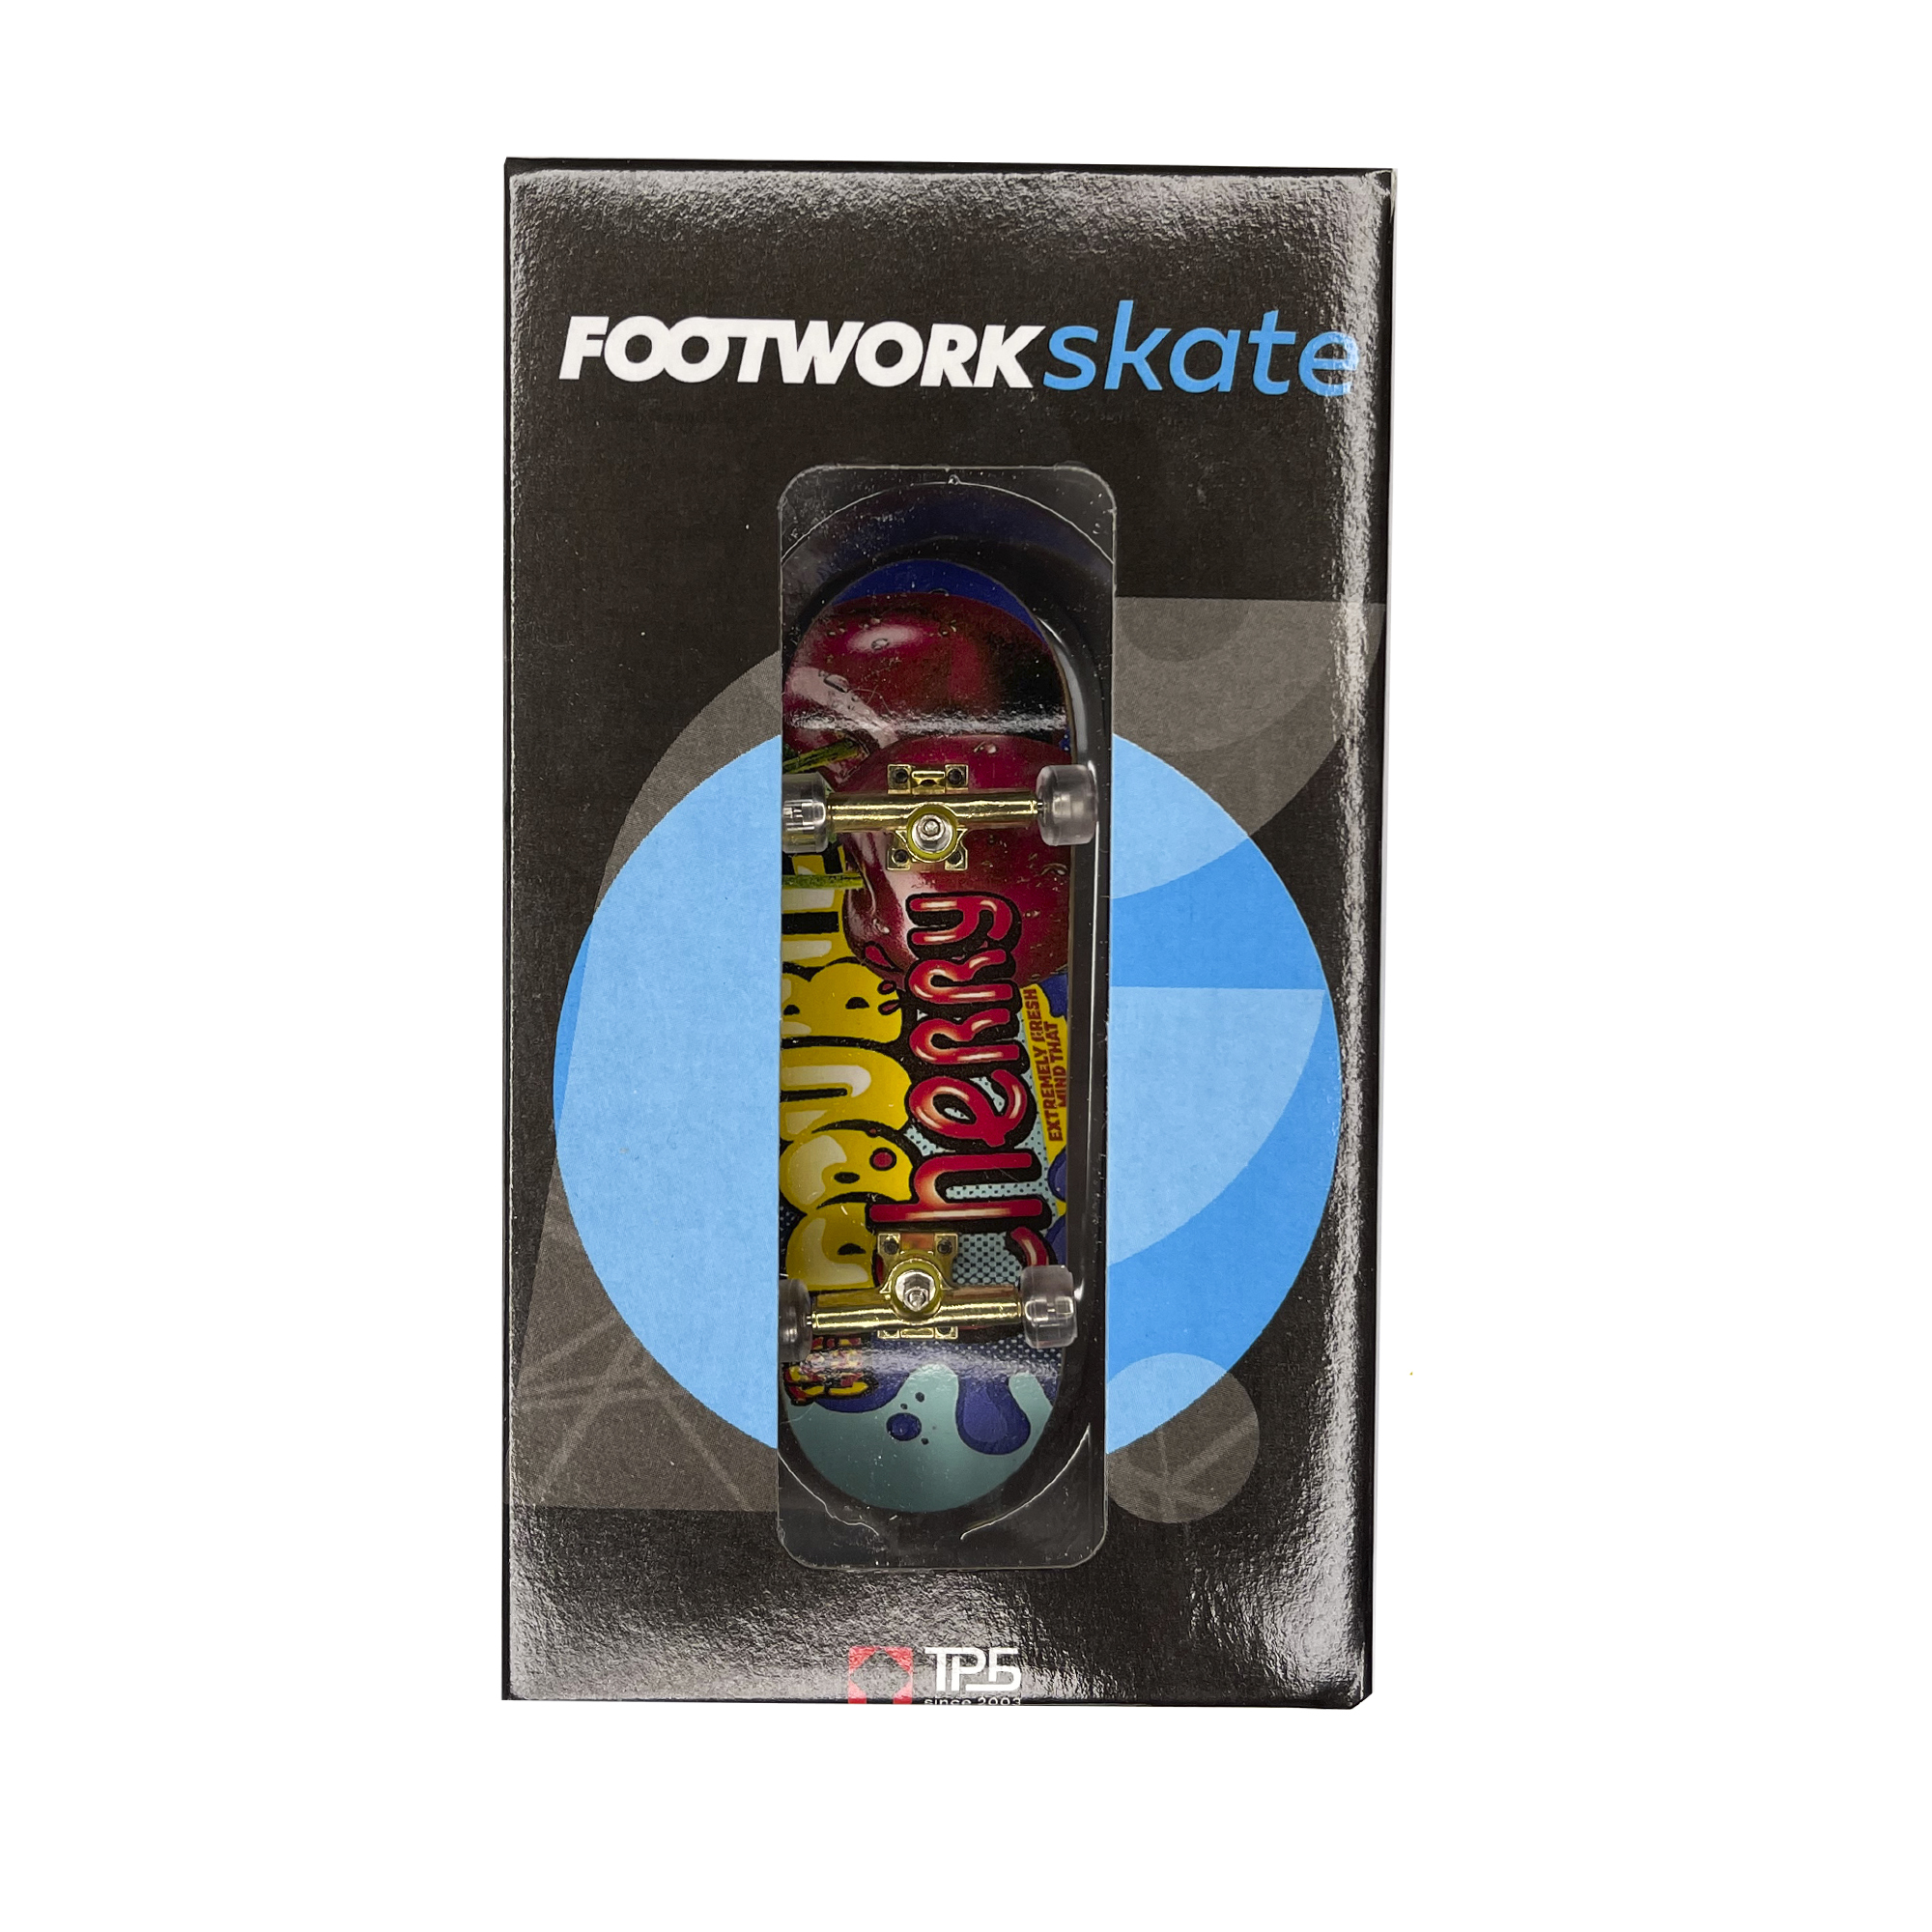 ФИНГЕРБОРД ТУРБО LIMITED FOOTWORK